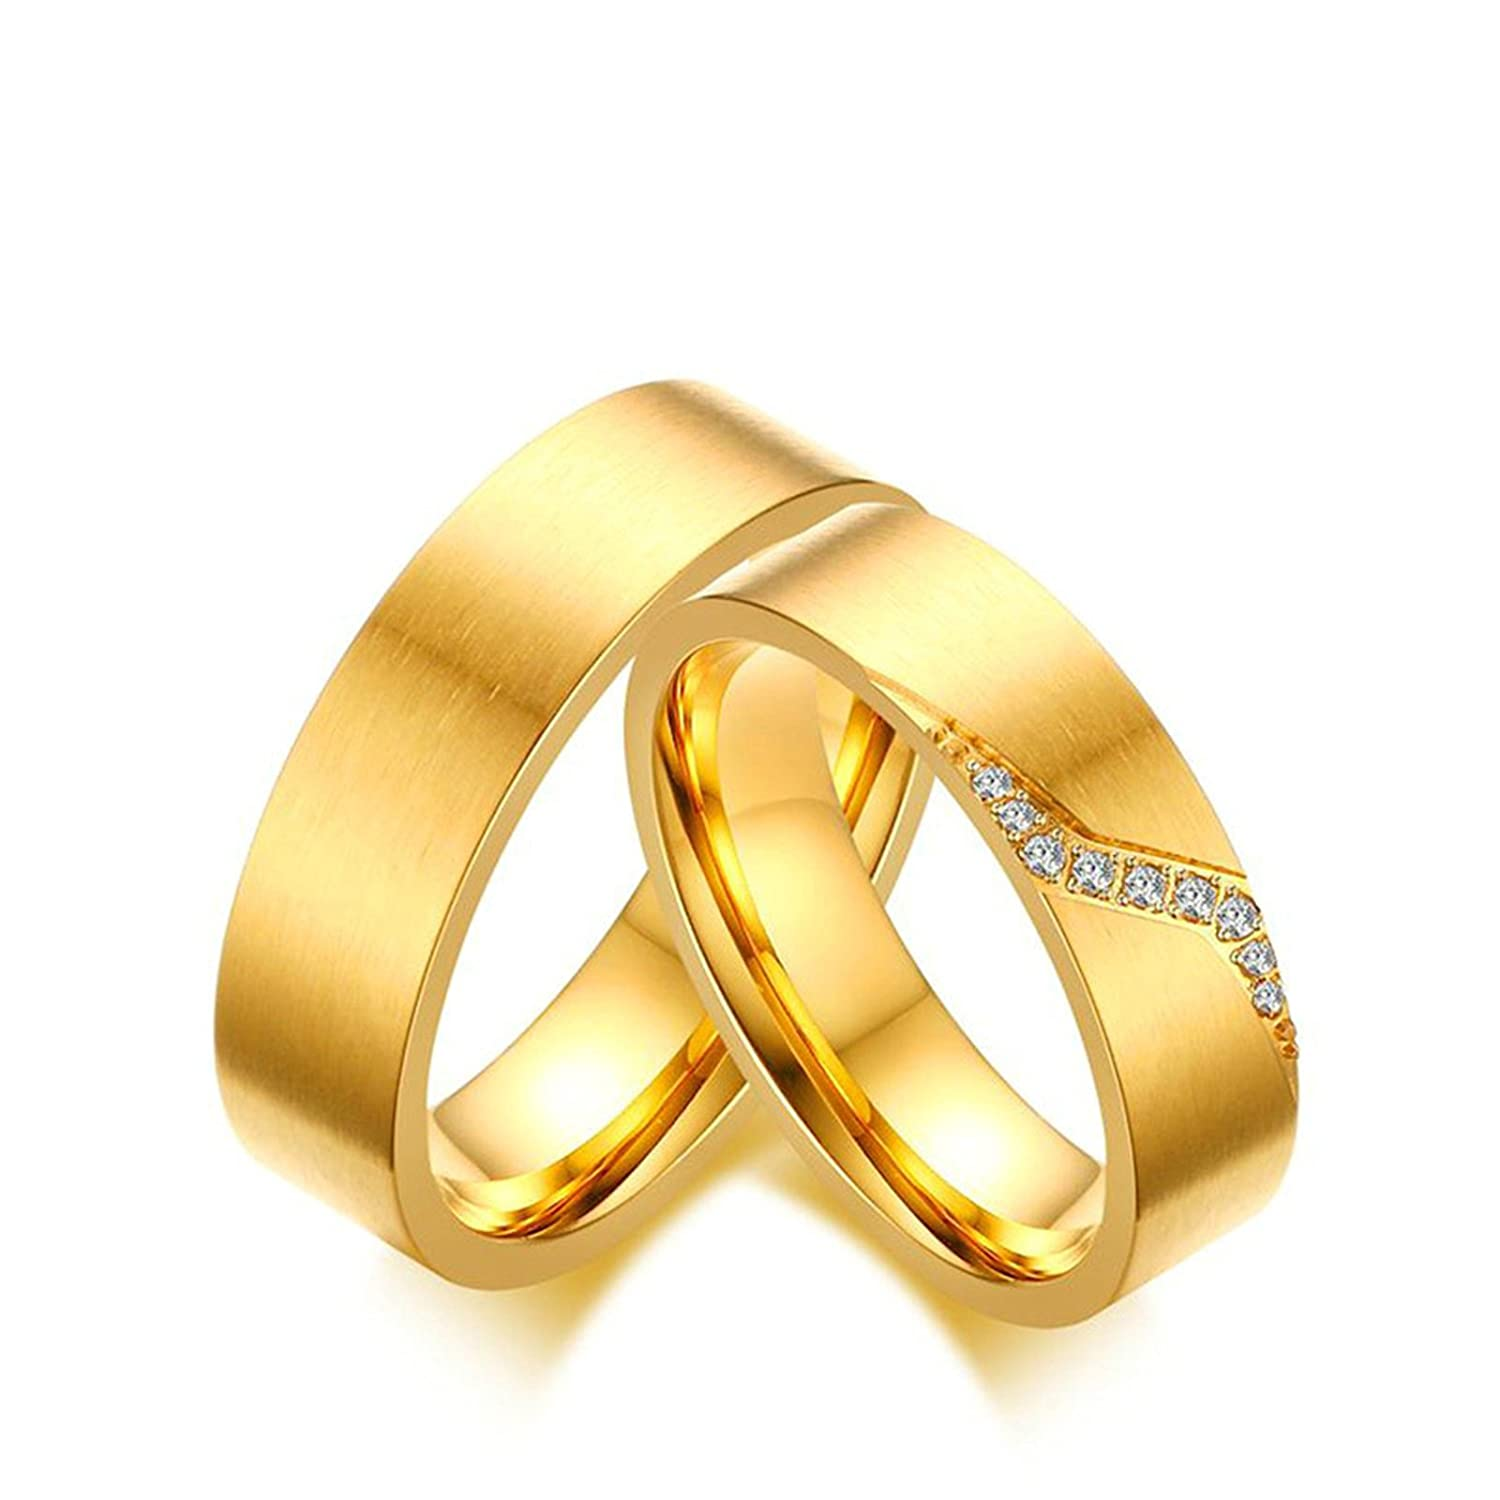 Aokarry Couples Wedding Ring His /& Hers Stainless Steel CZ Ring Brushed Sruface Gold Tone 6MM